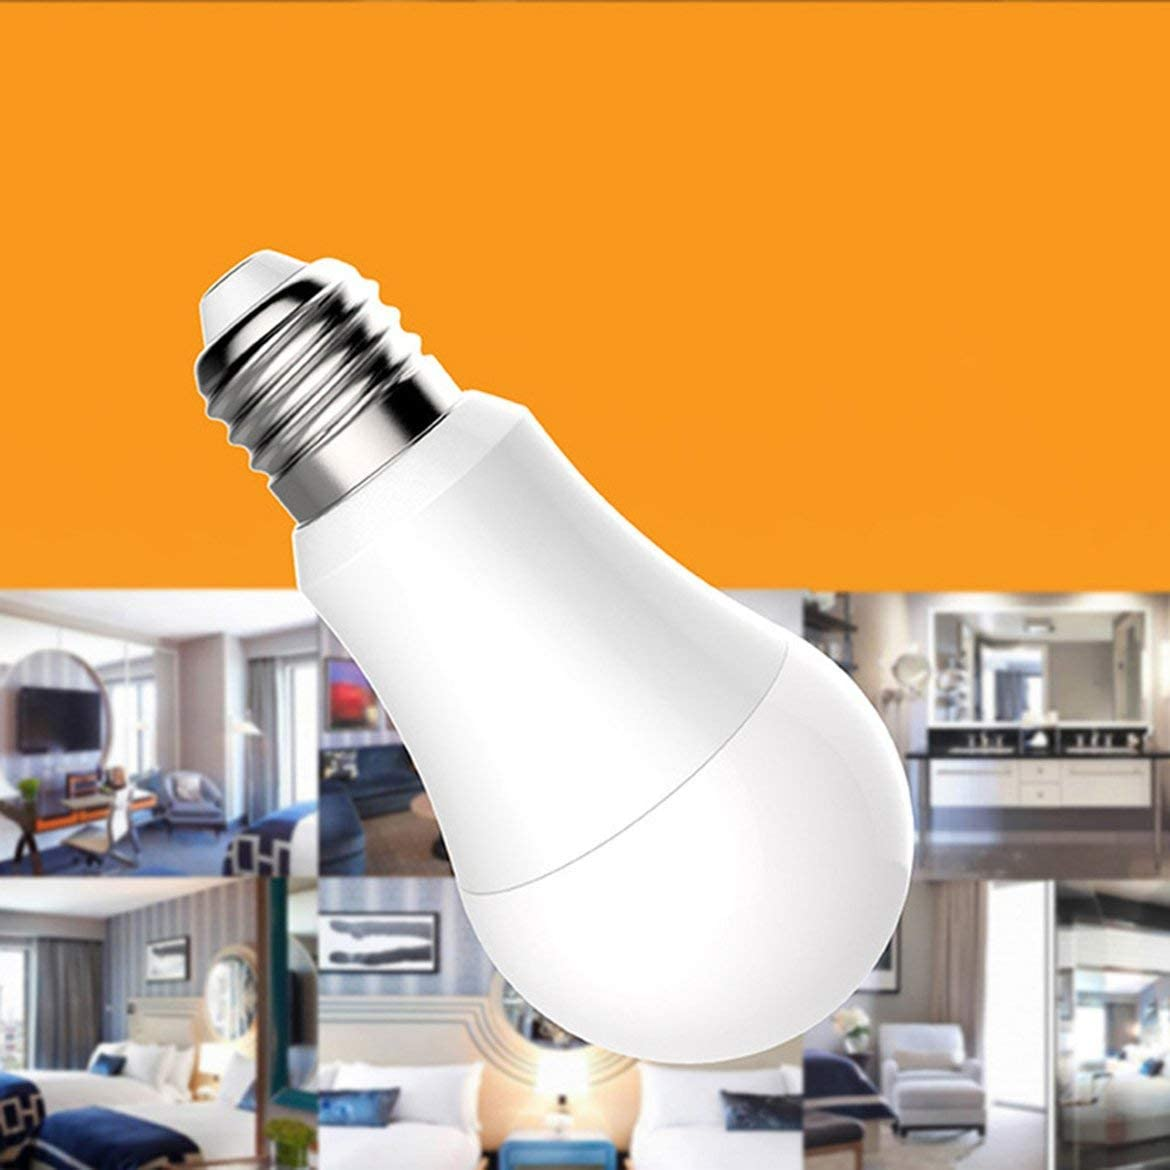 Pandamama Warm Light Remote Control Smart WiFi LED Light Bulb for  Voice Control Alexa Dimmable Lamp Bulb